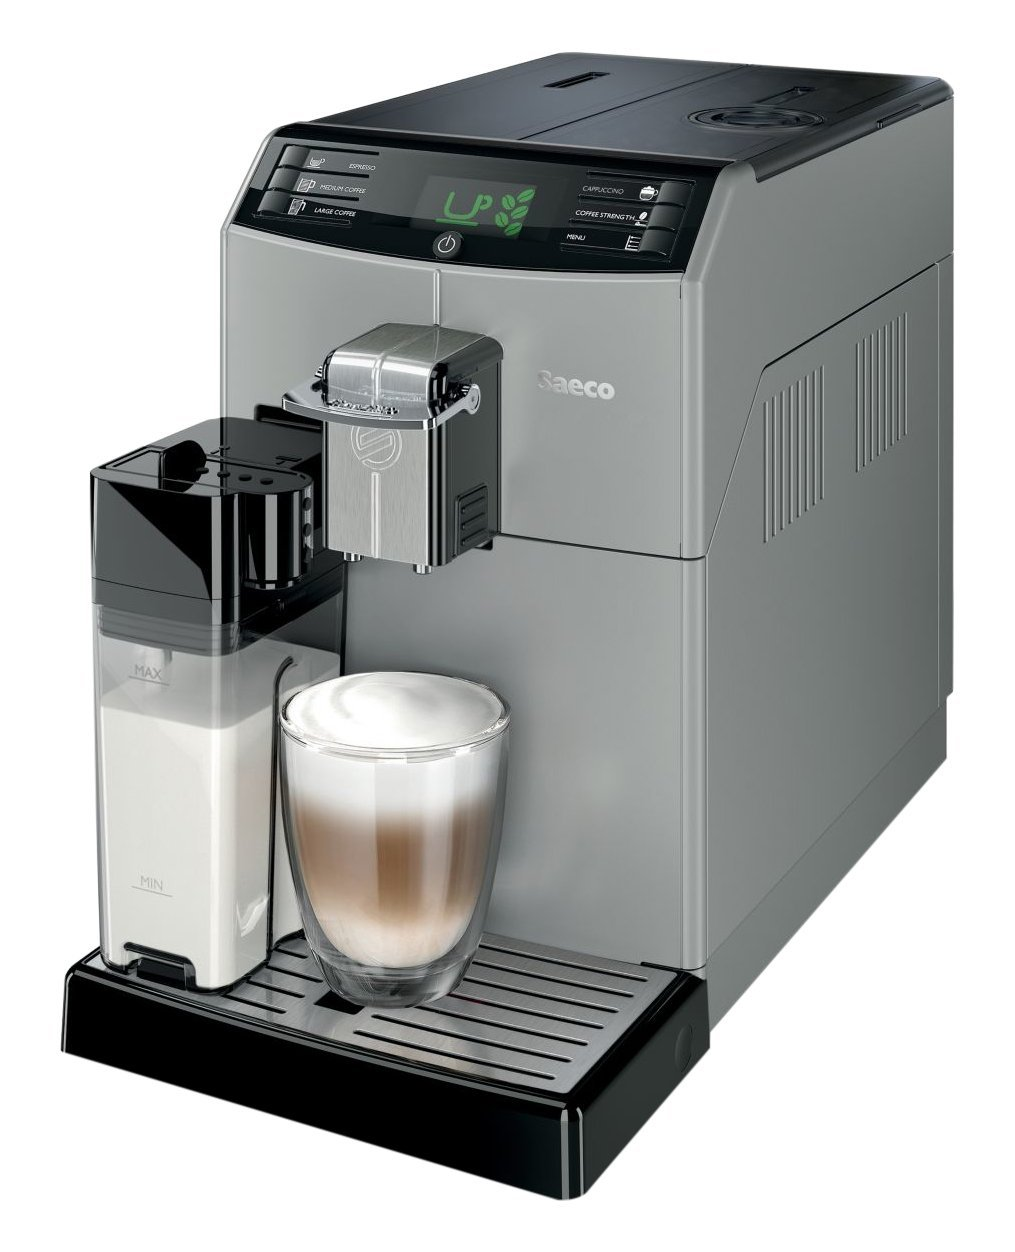 Saeco Minuto Super Automatic Espresso Machine (View on Amazon)